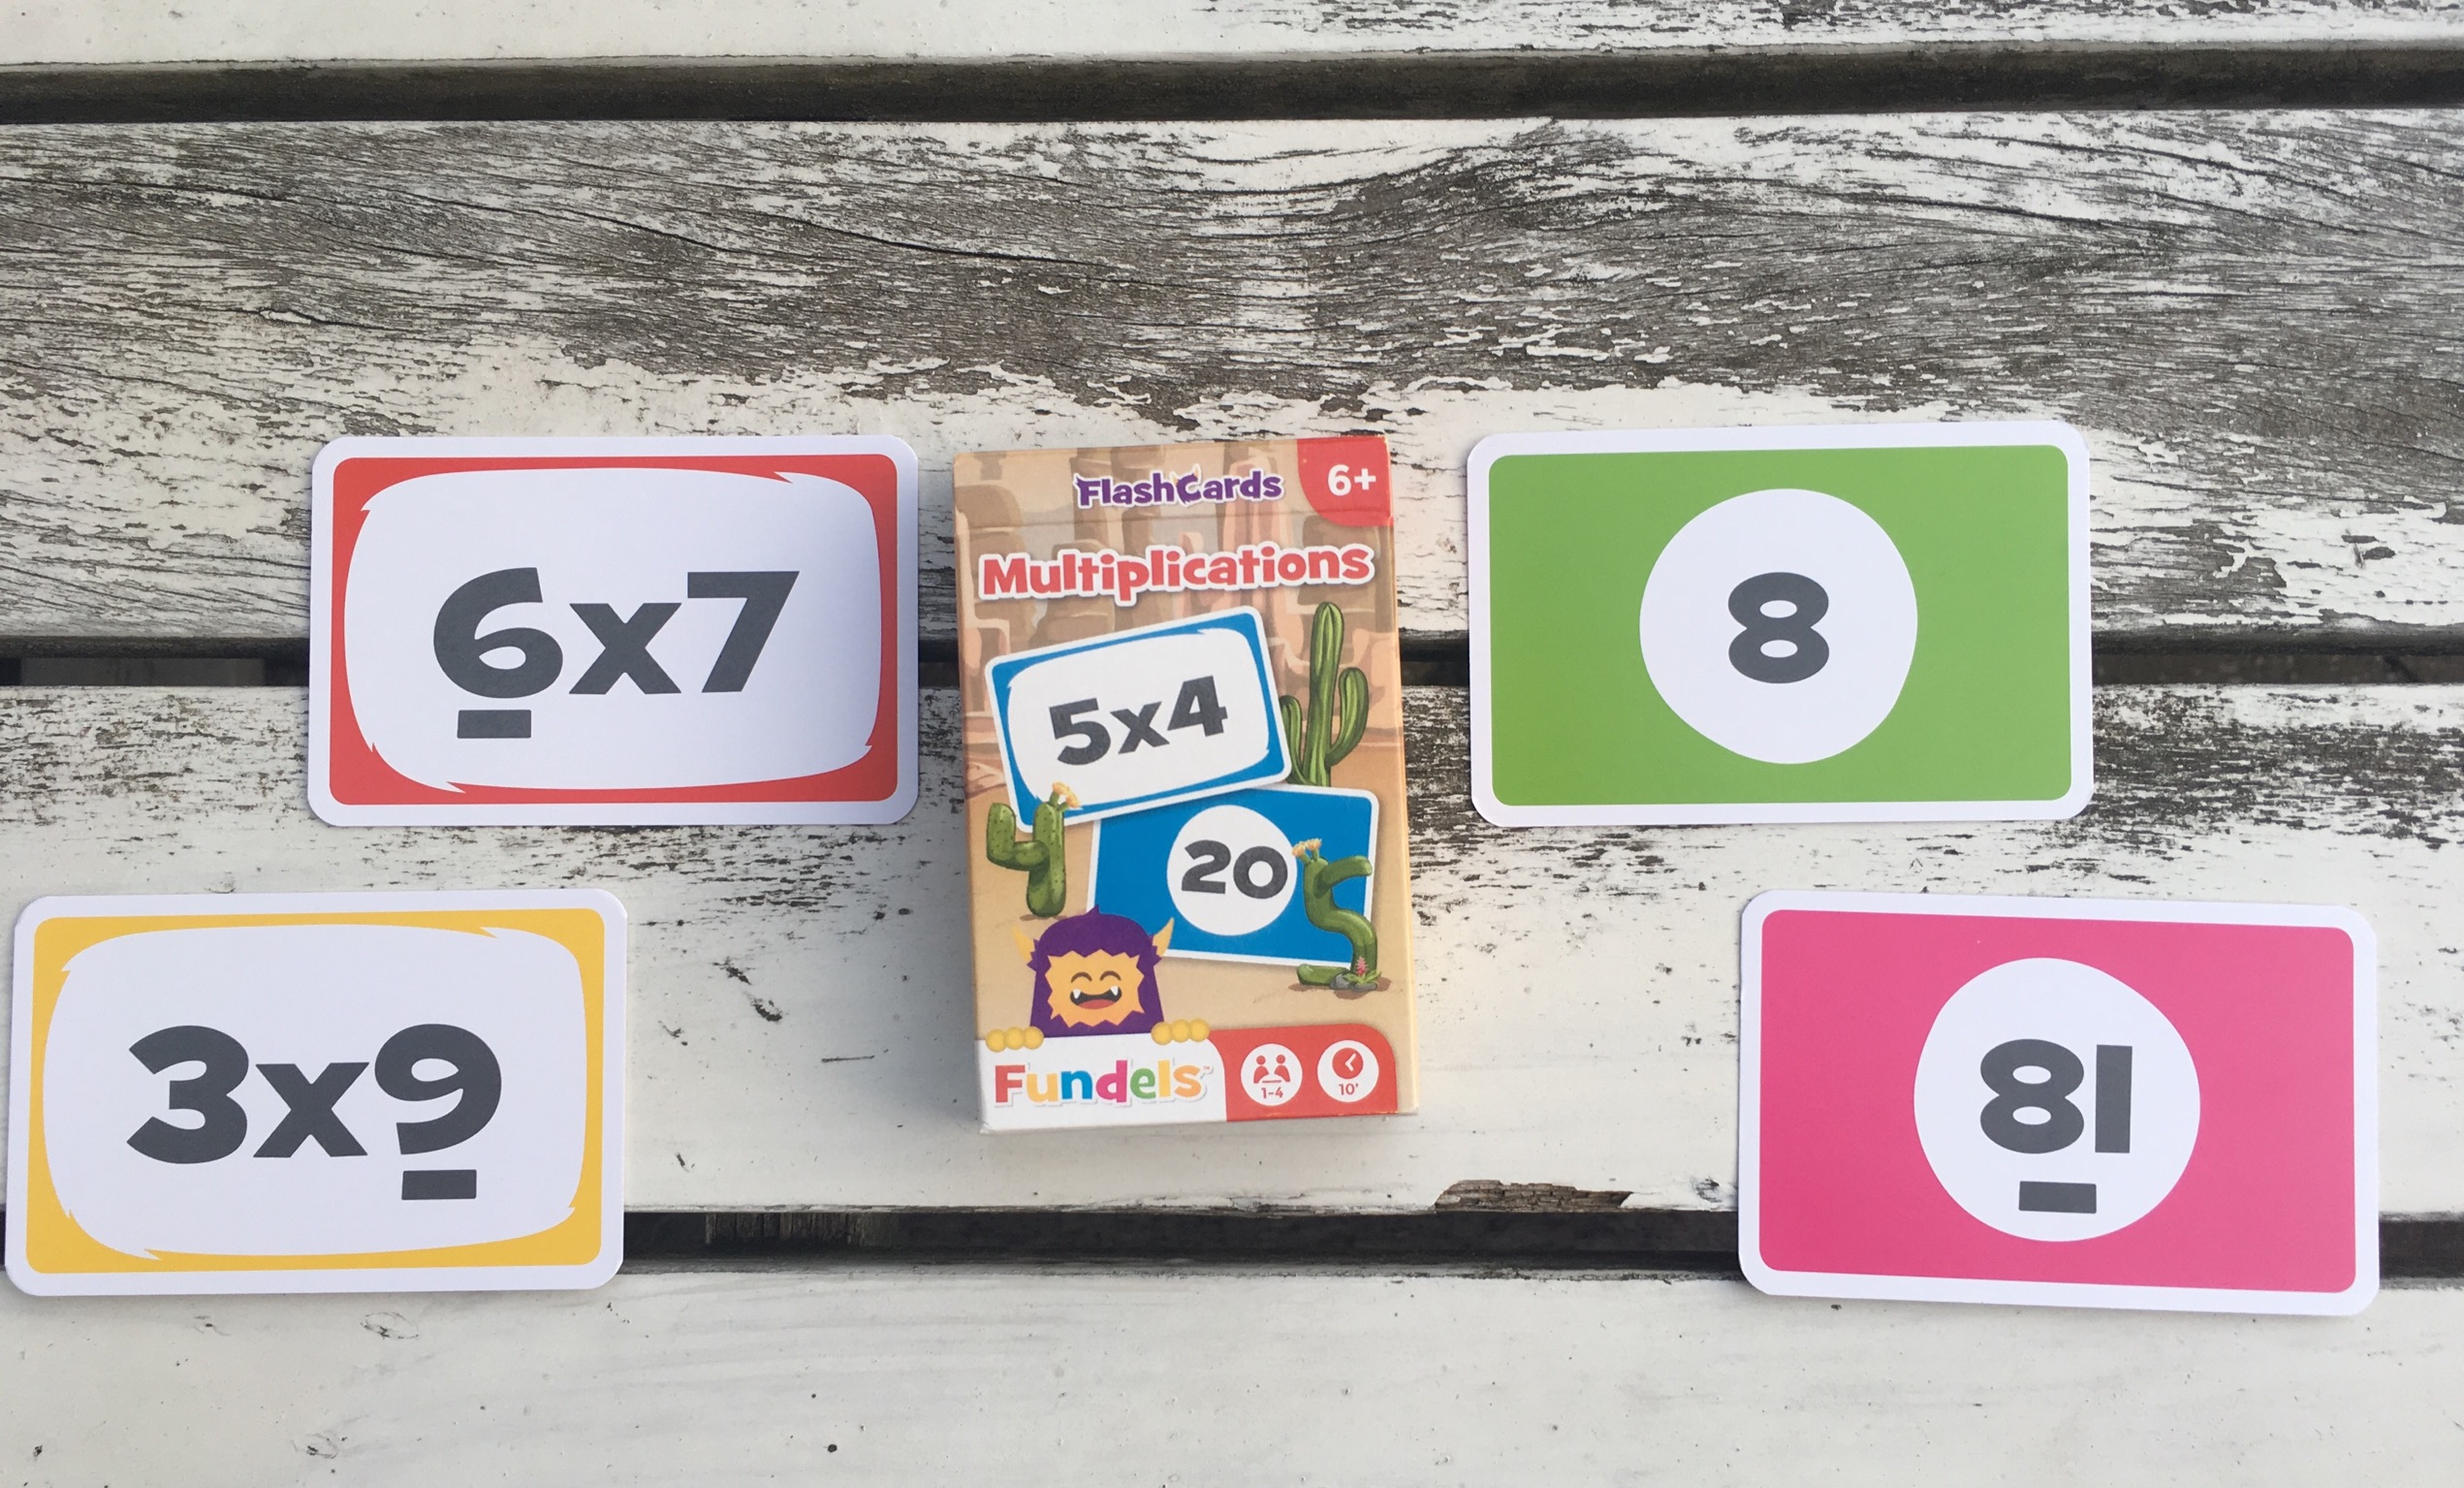 Flashcards Multiplications